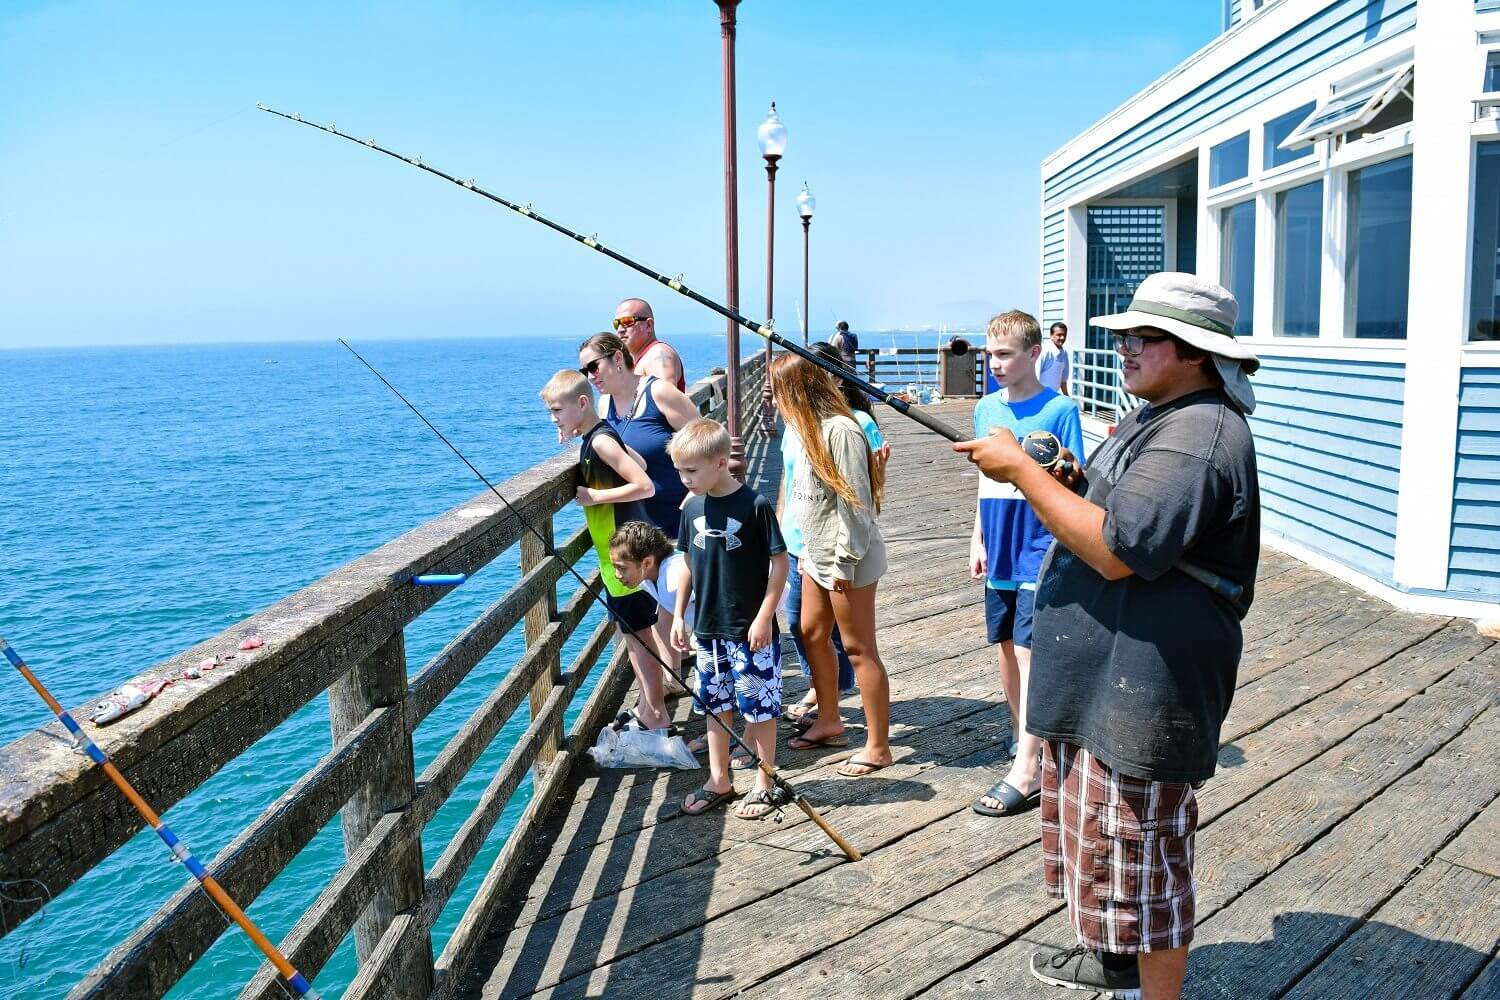 Pier-Fishing-small.jpg